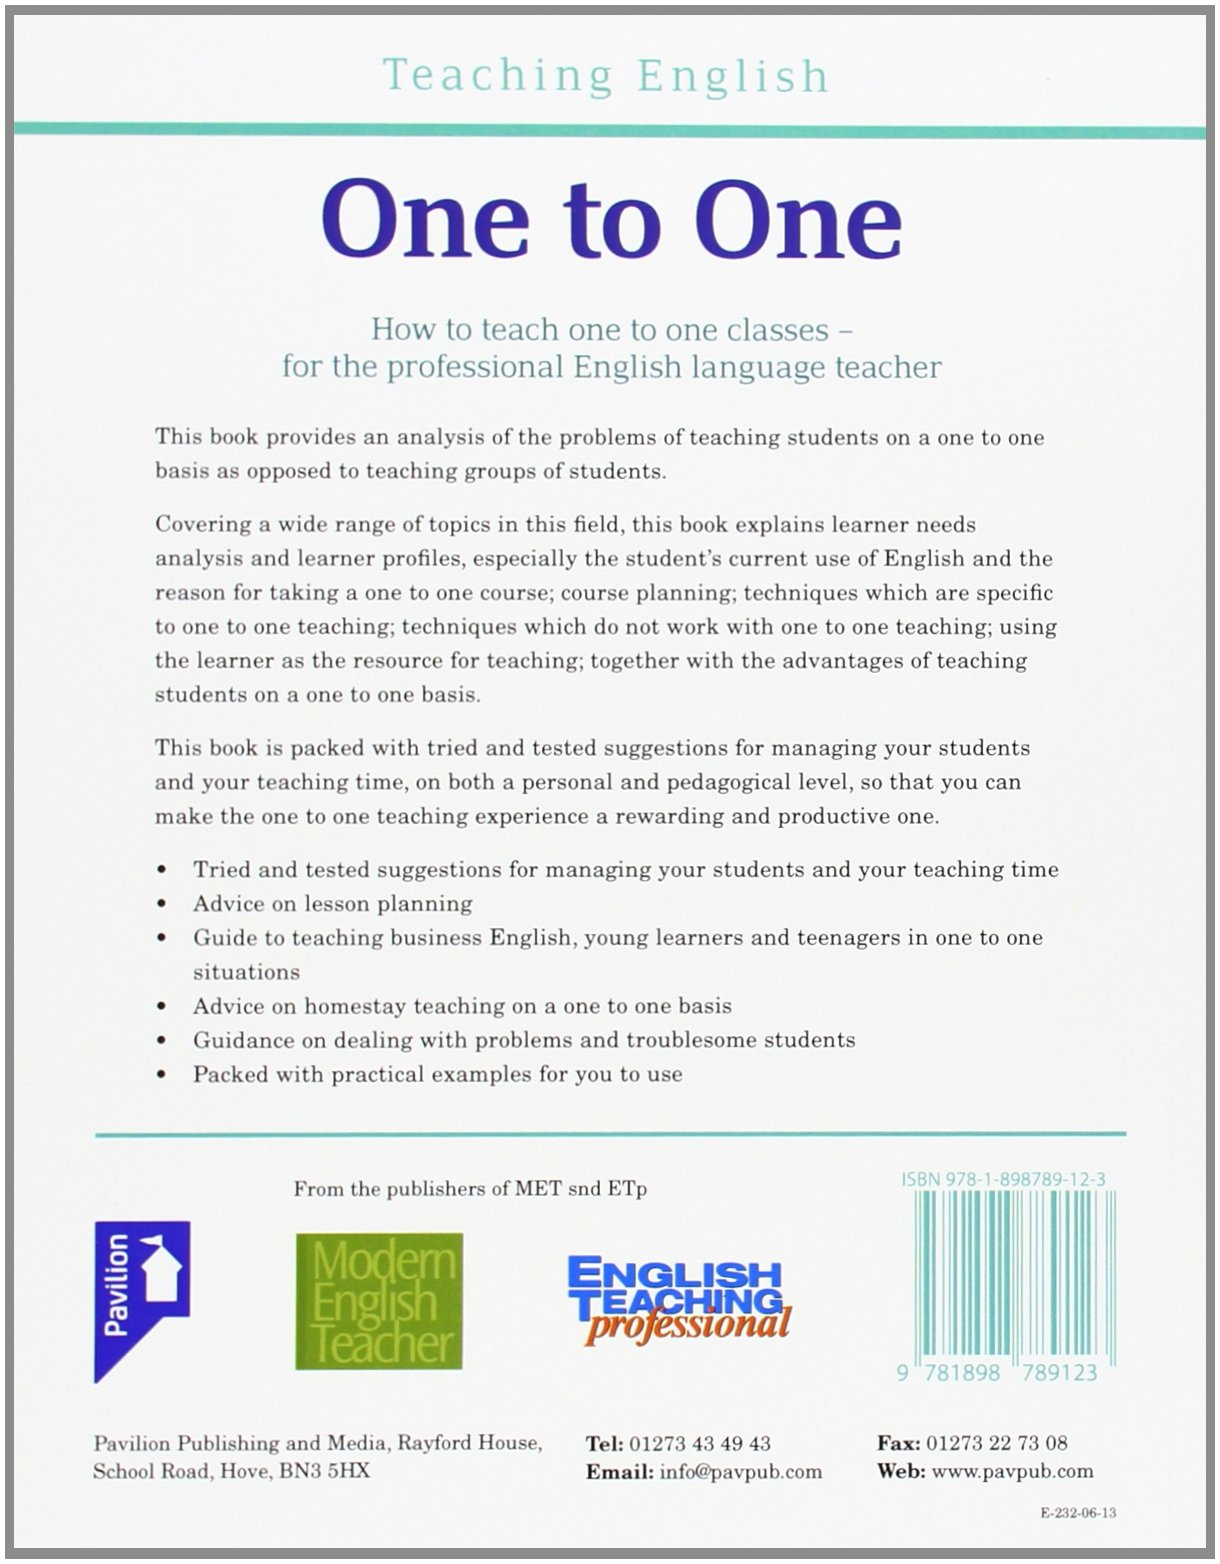 Teaching english one to one amazon priscilla osborne teaching english one to one amazon priscilla osborne 9781898789123 books fandeluxe Gallery